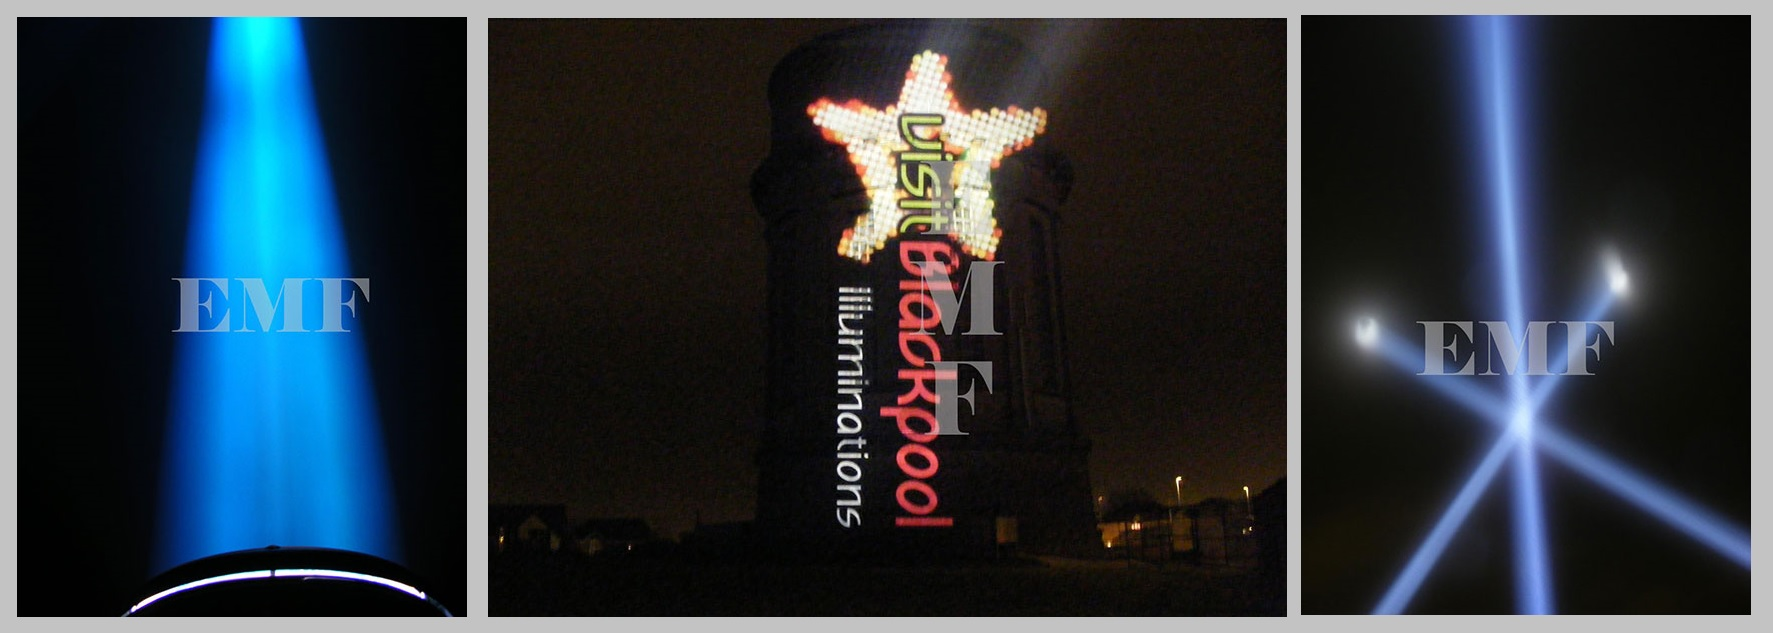 Blackpool Illuminations Projection Campaign